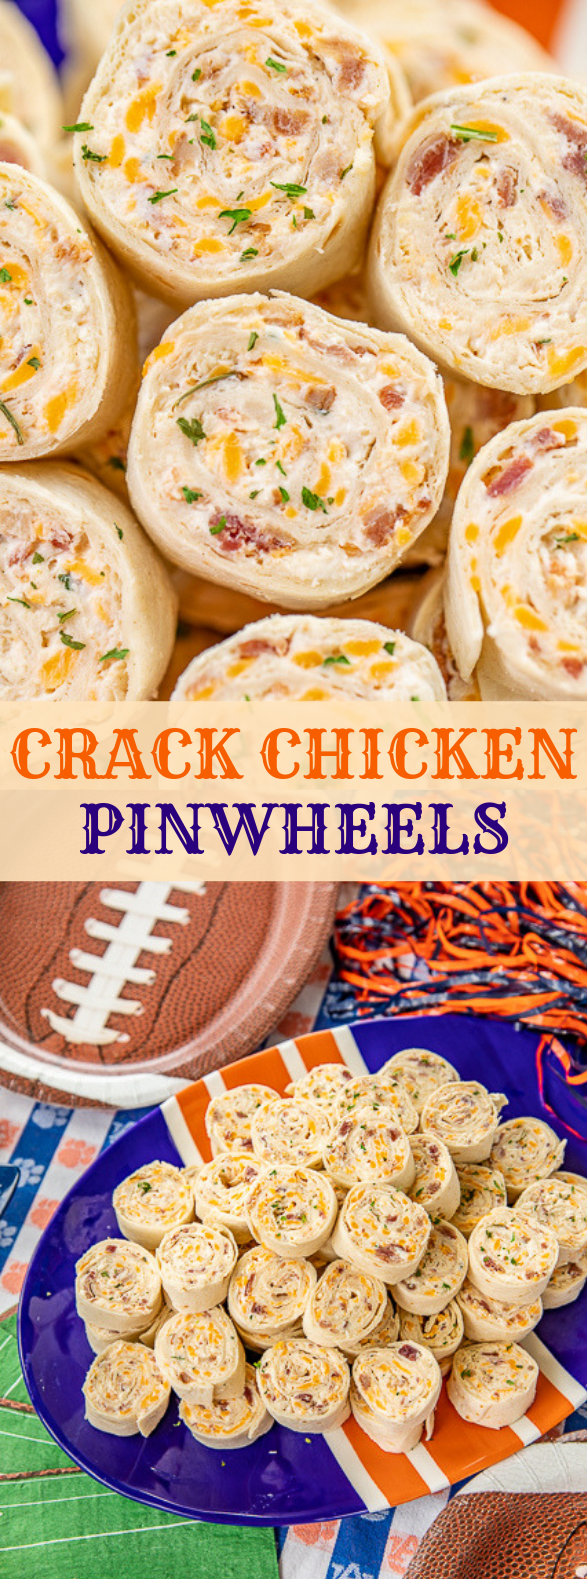 CRACK CHICKEN PINWHEELS #readytoeat #partyfood